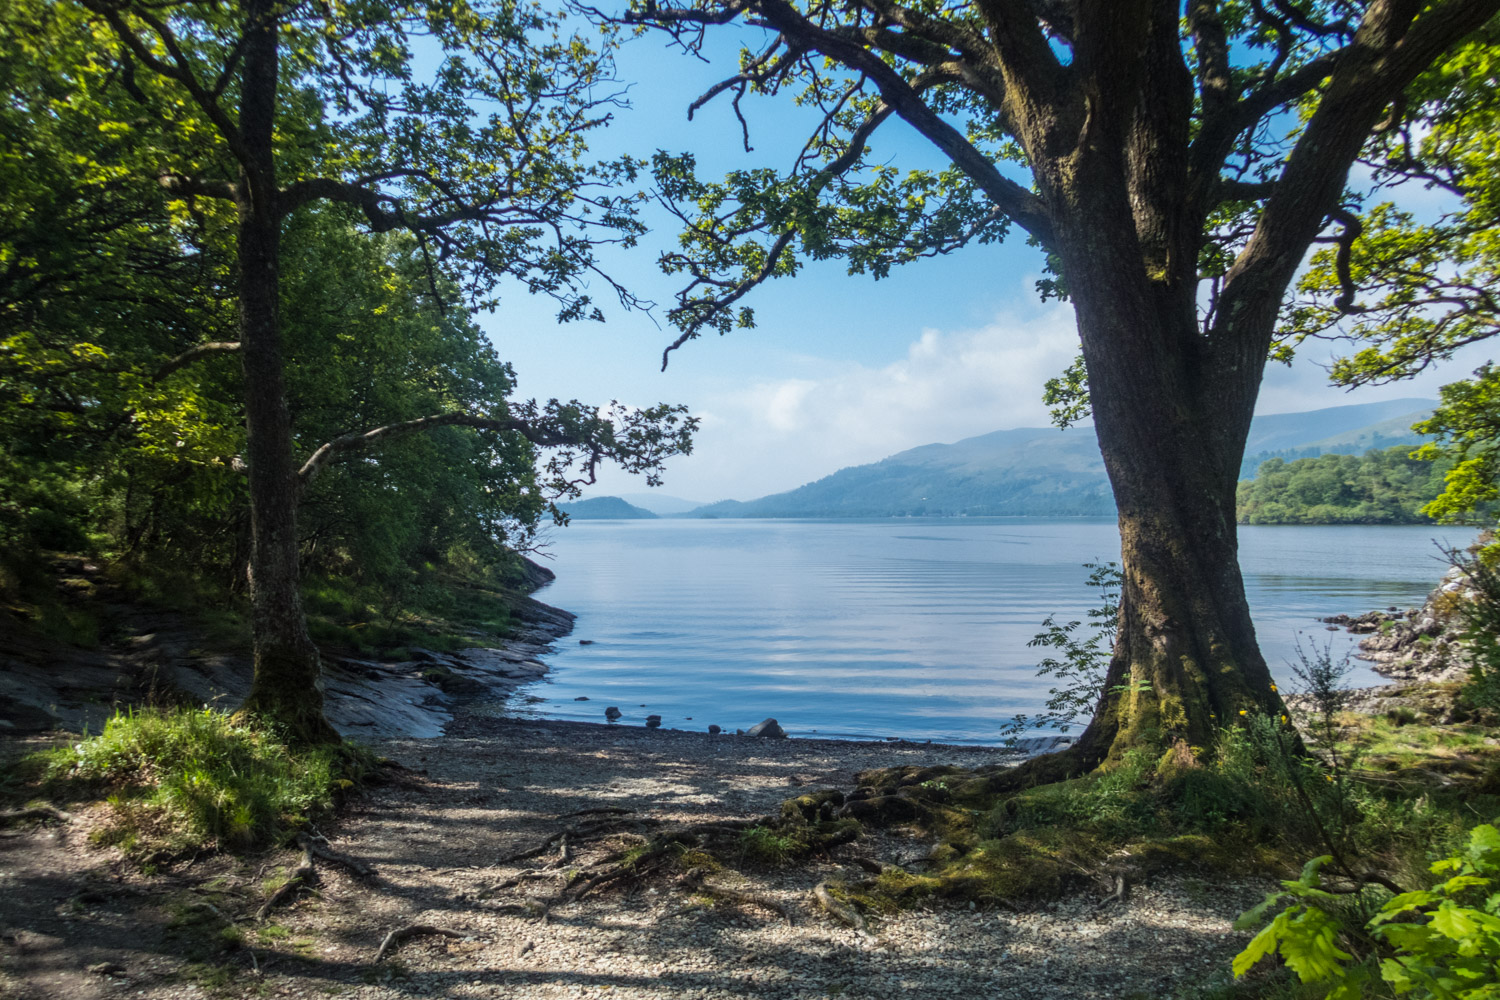 The views out to Loch Lomond from small bays in the forest like this were fantastic.